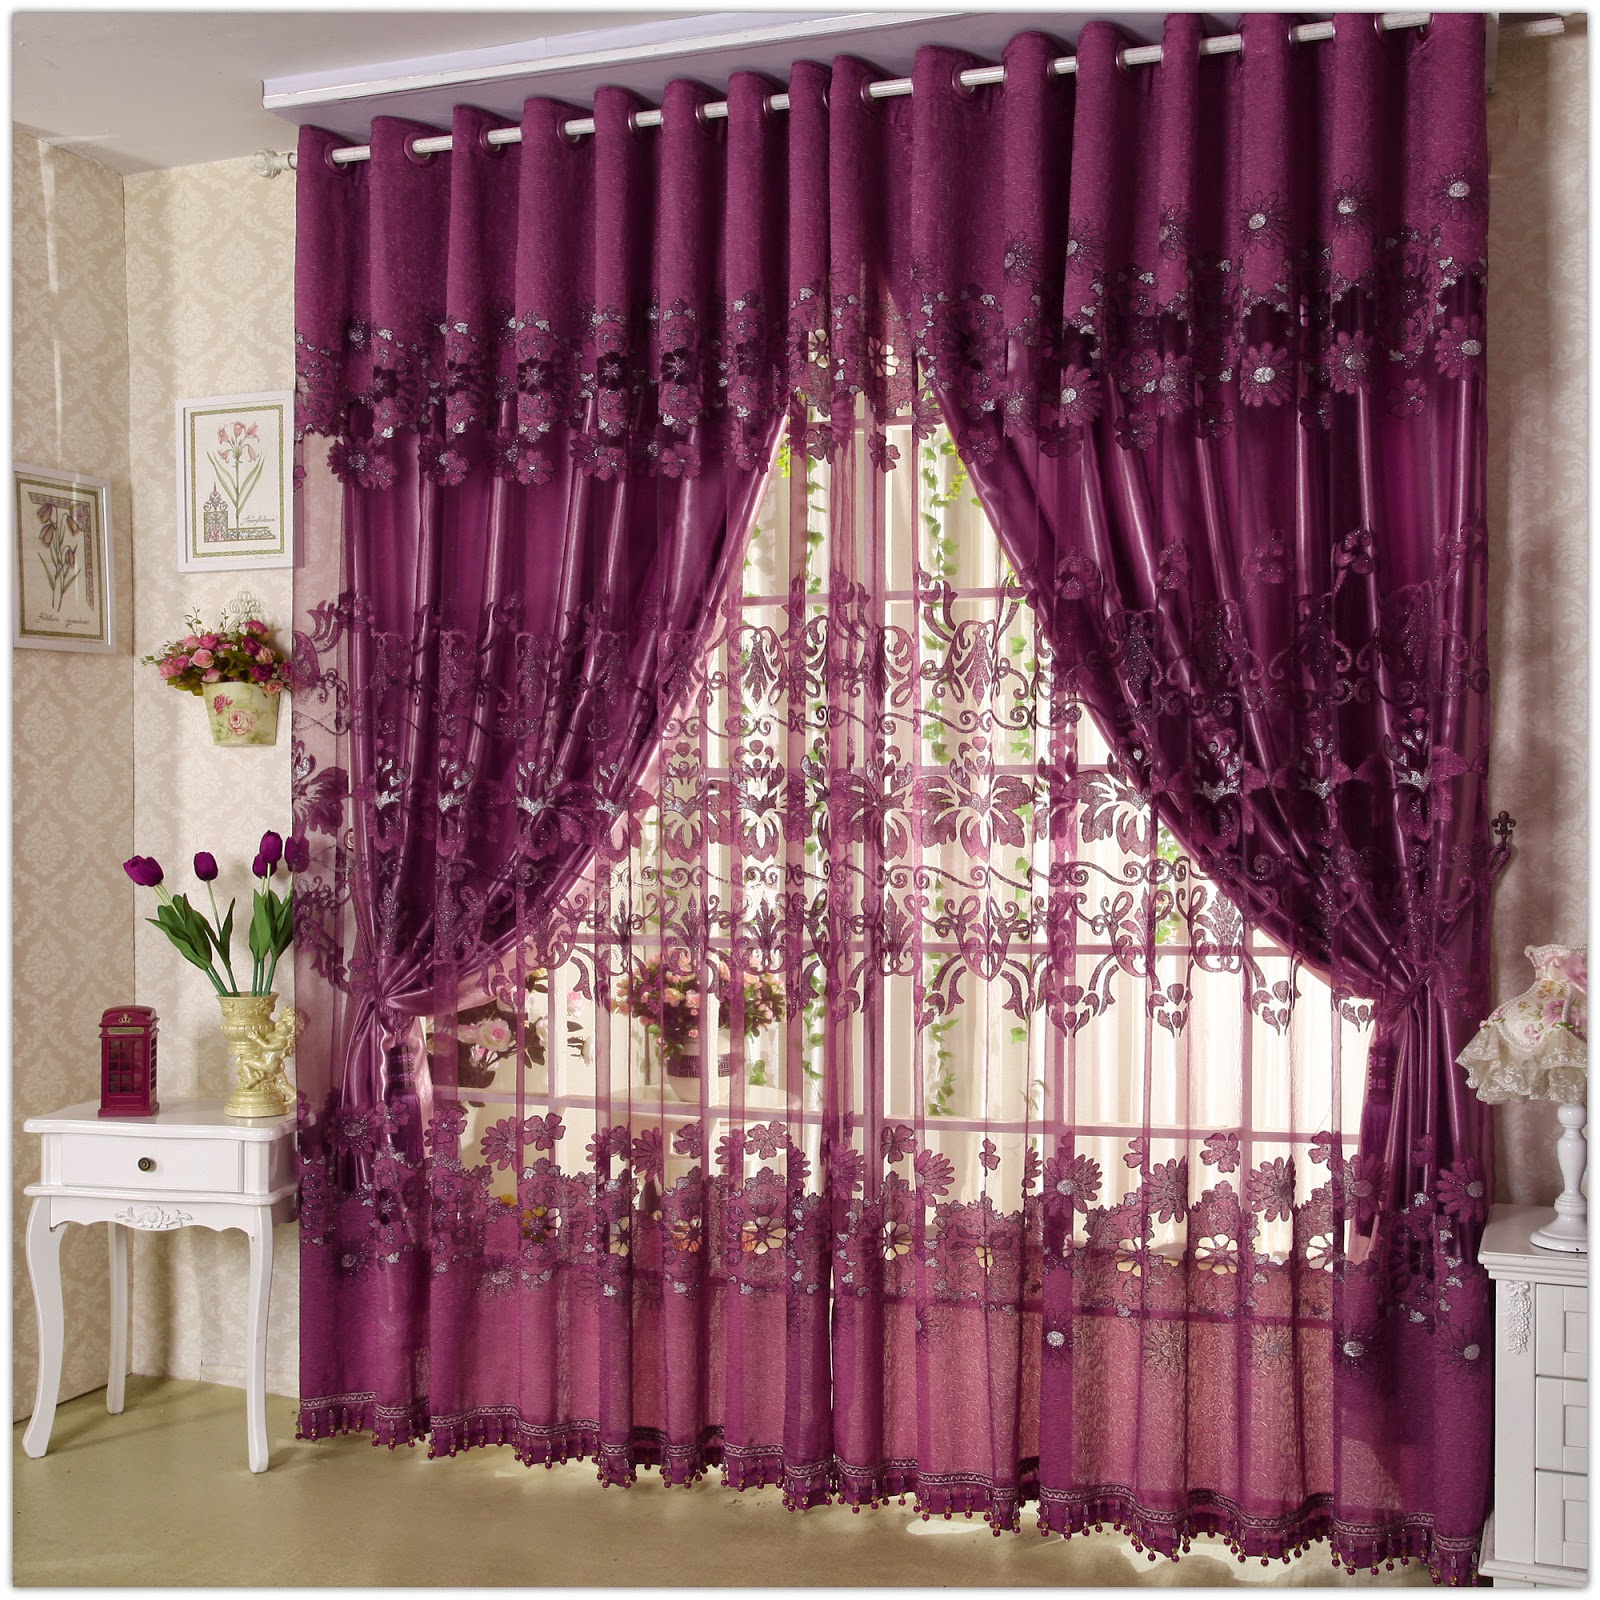 Living Room Curtain Designs For Living Room purple curtain2bdesigns living room interior decoration2b4 curtain curtainbdesigns decorationb ideas room